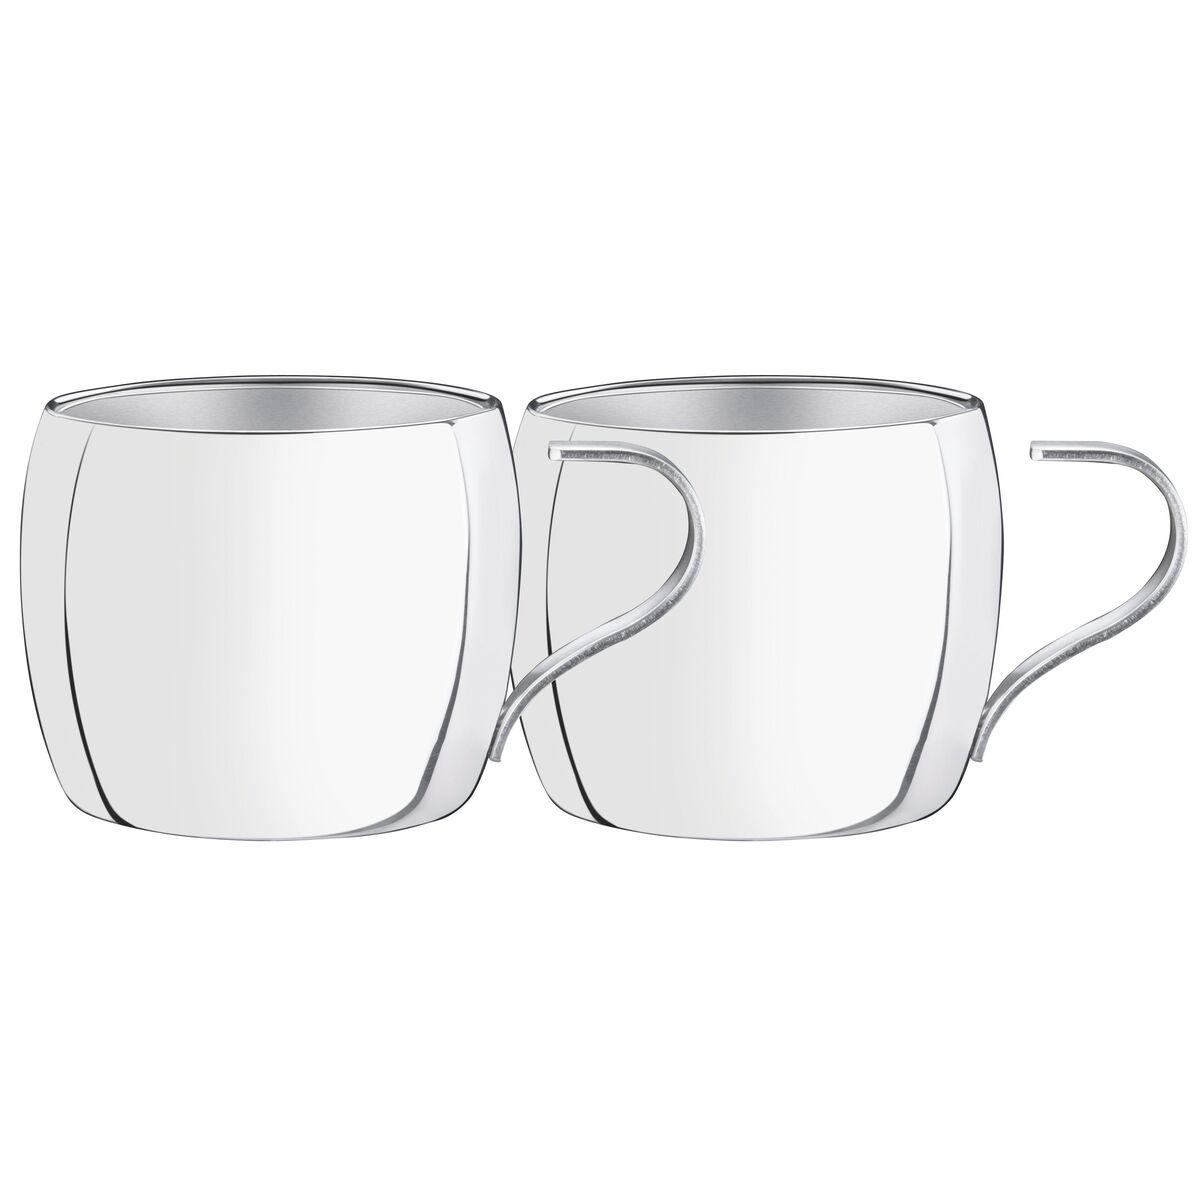 Tramontina stainless steel tea and cappuccino cup set with shiny finish, 2 pc set